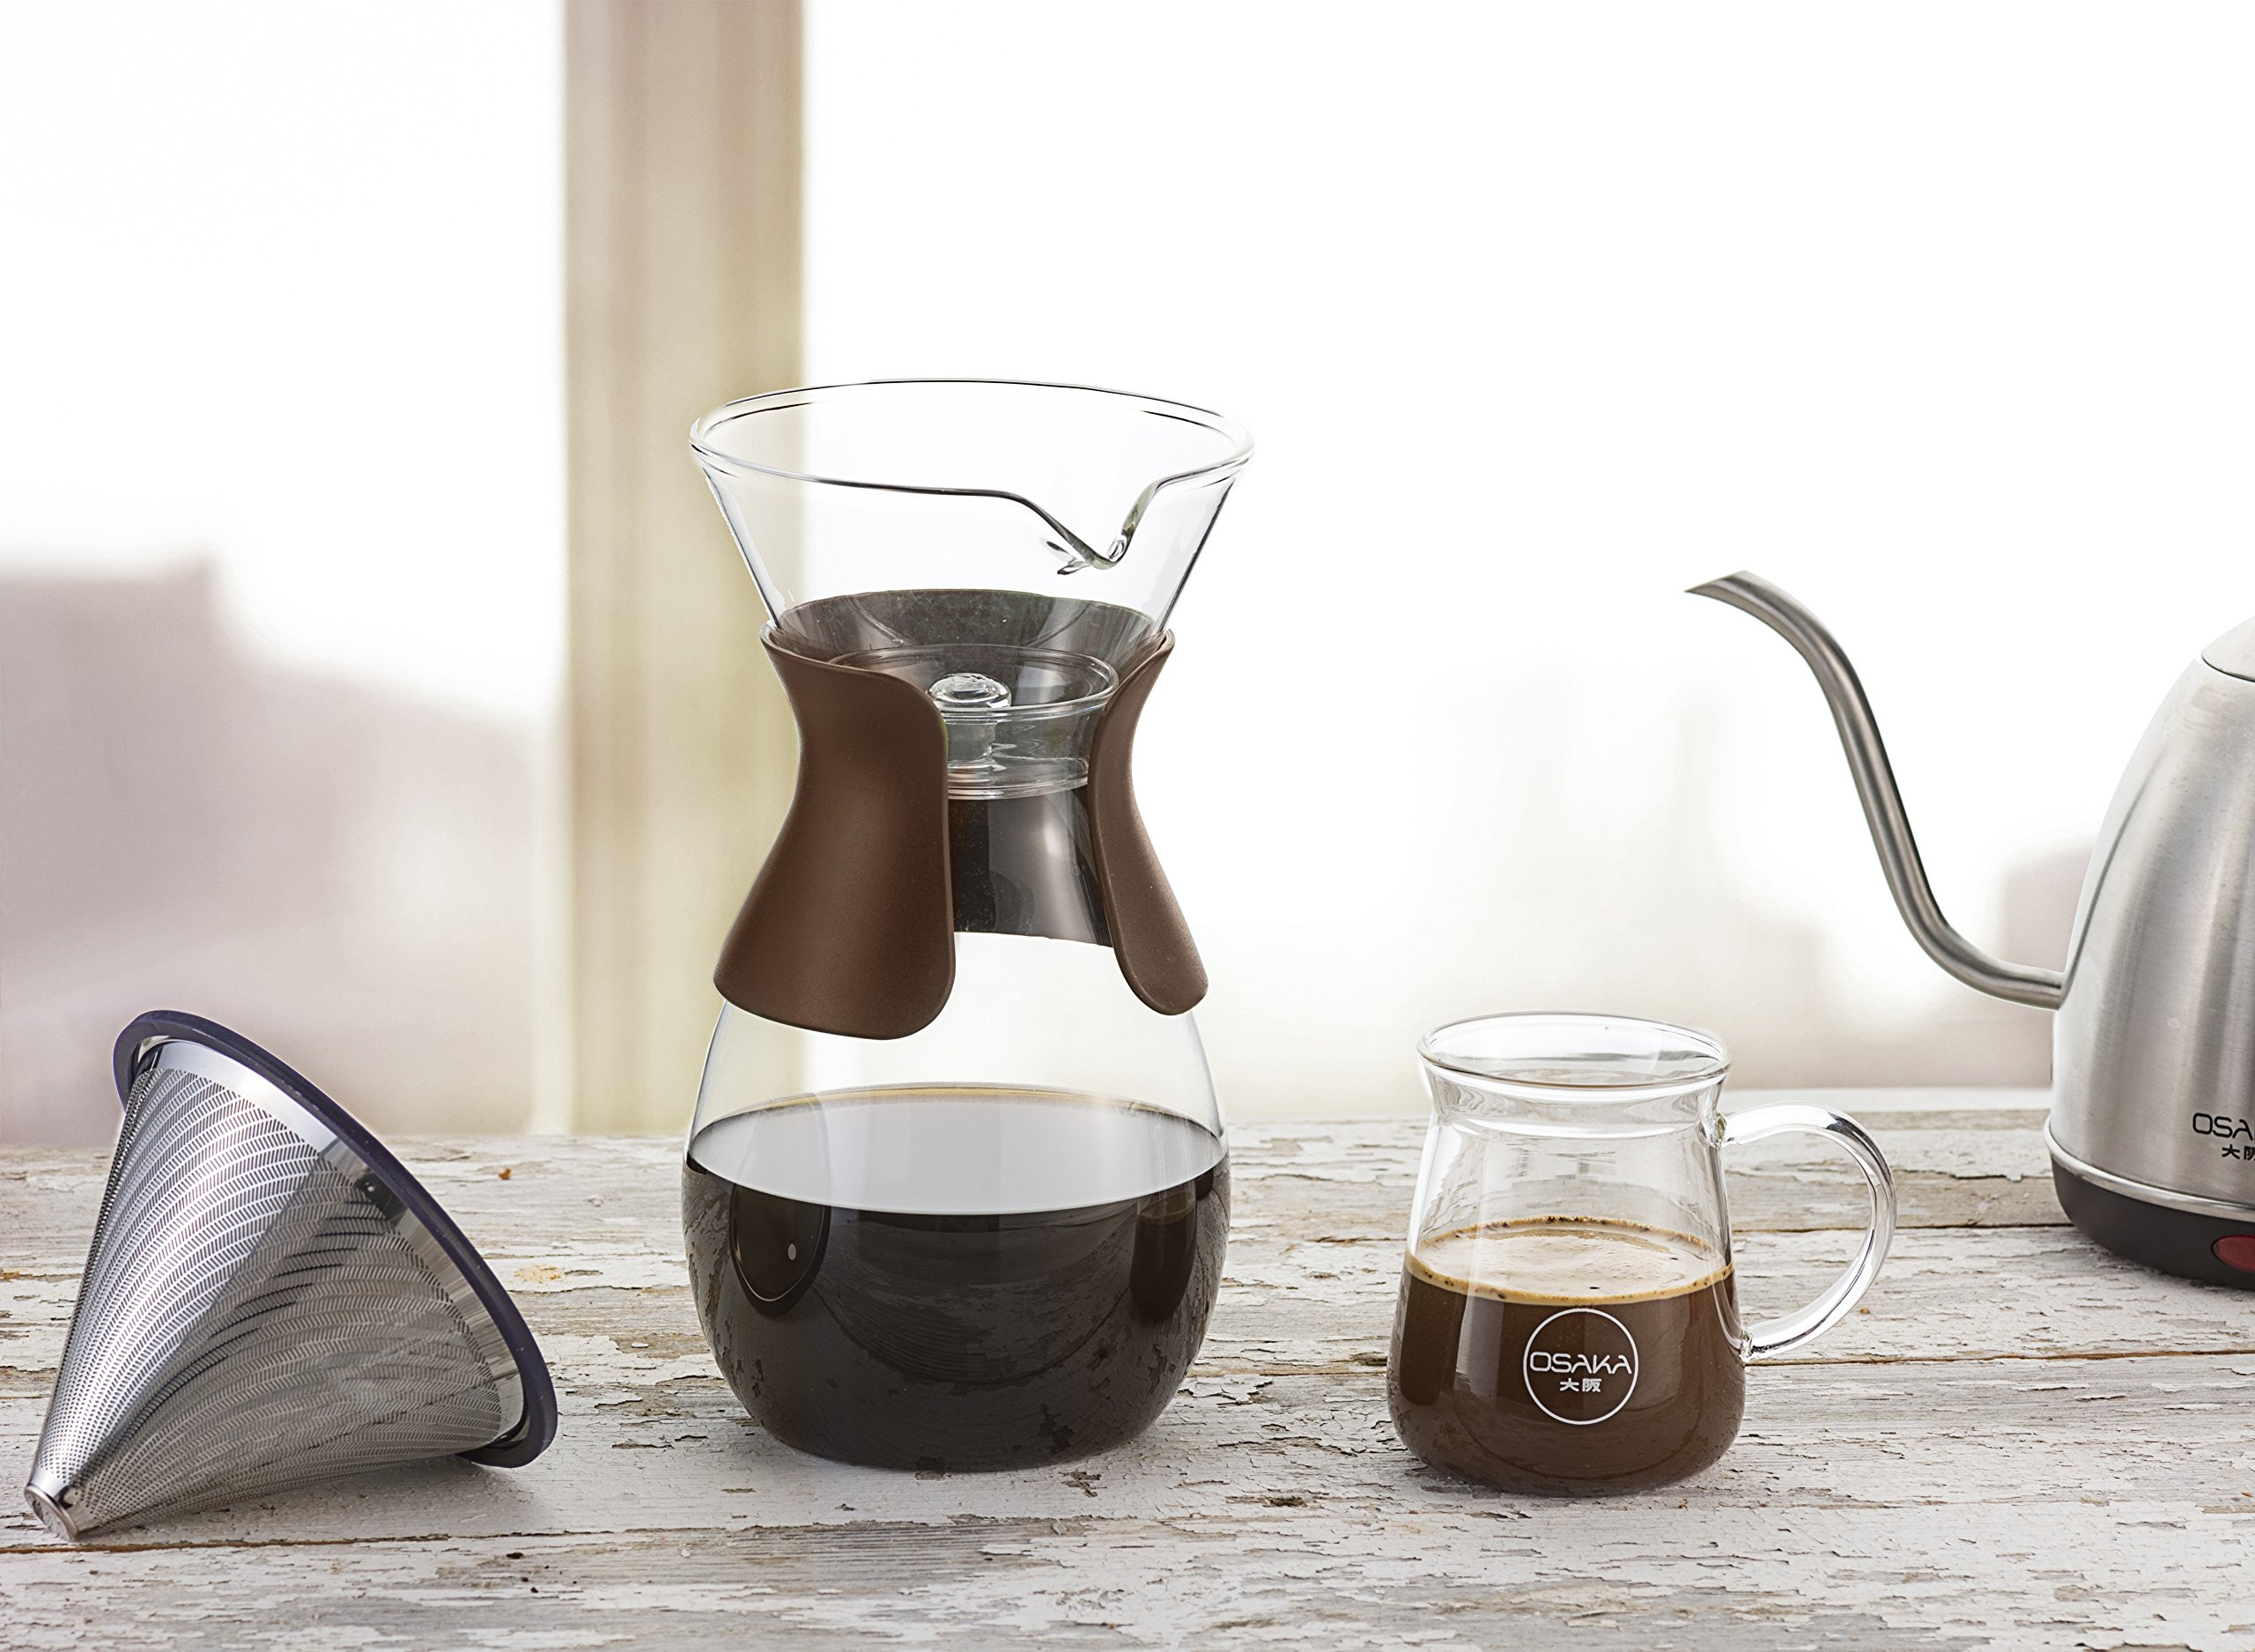 Osaka Pour Over Coffee Maker with Reusable Stainless Steel Drip Filter, 37 oz (7-Cup) Glass Carafe and Lid 'Senso-JI', Brown by Actor (Image #7)